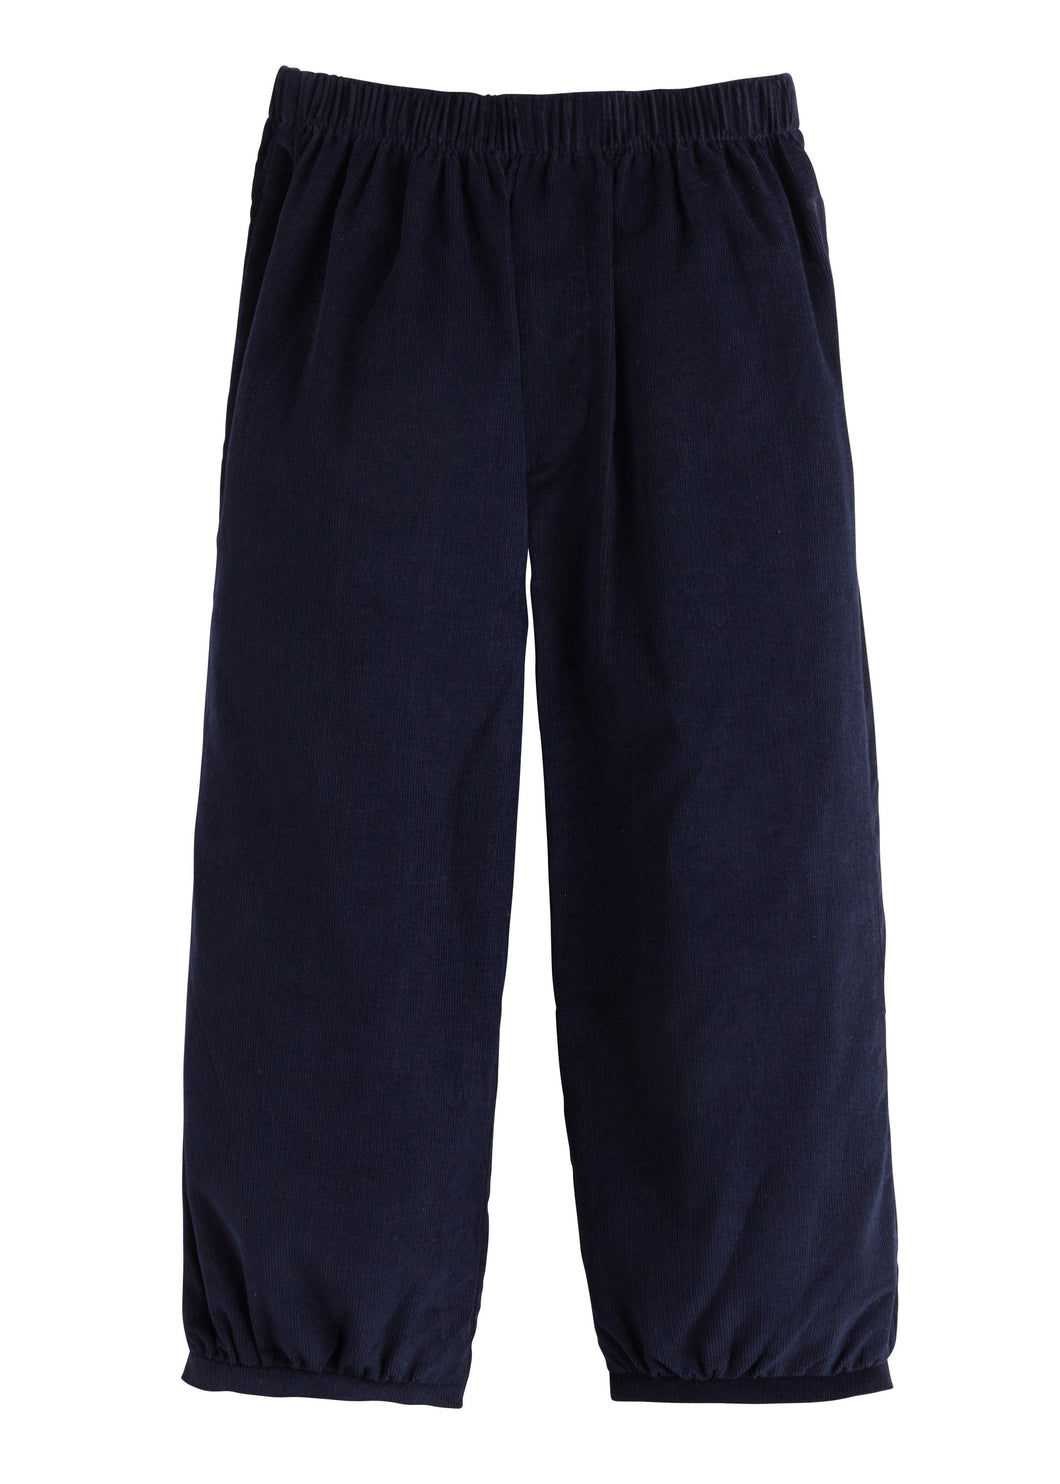 Banded Pull on Pant - Navy Corduroy